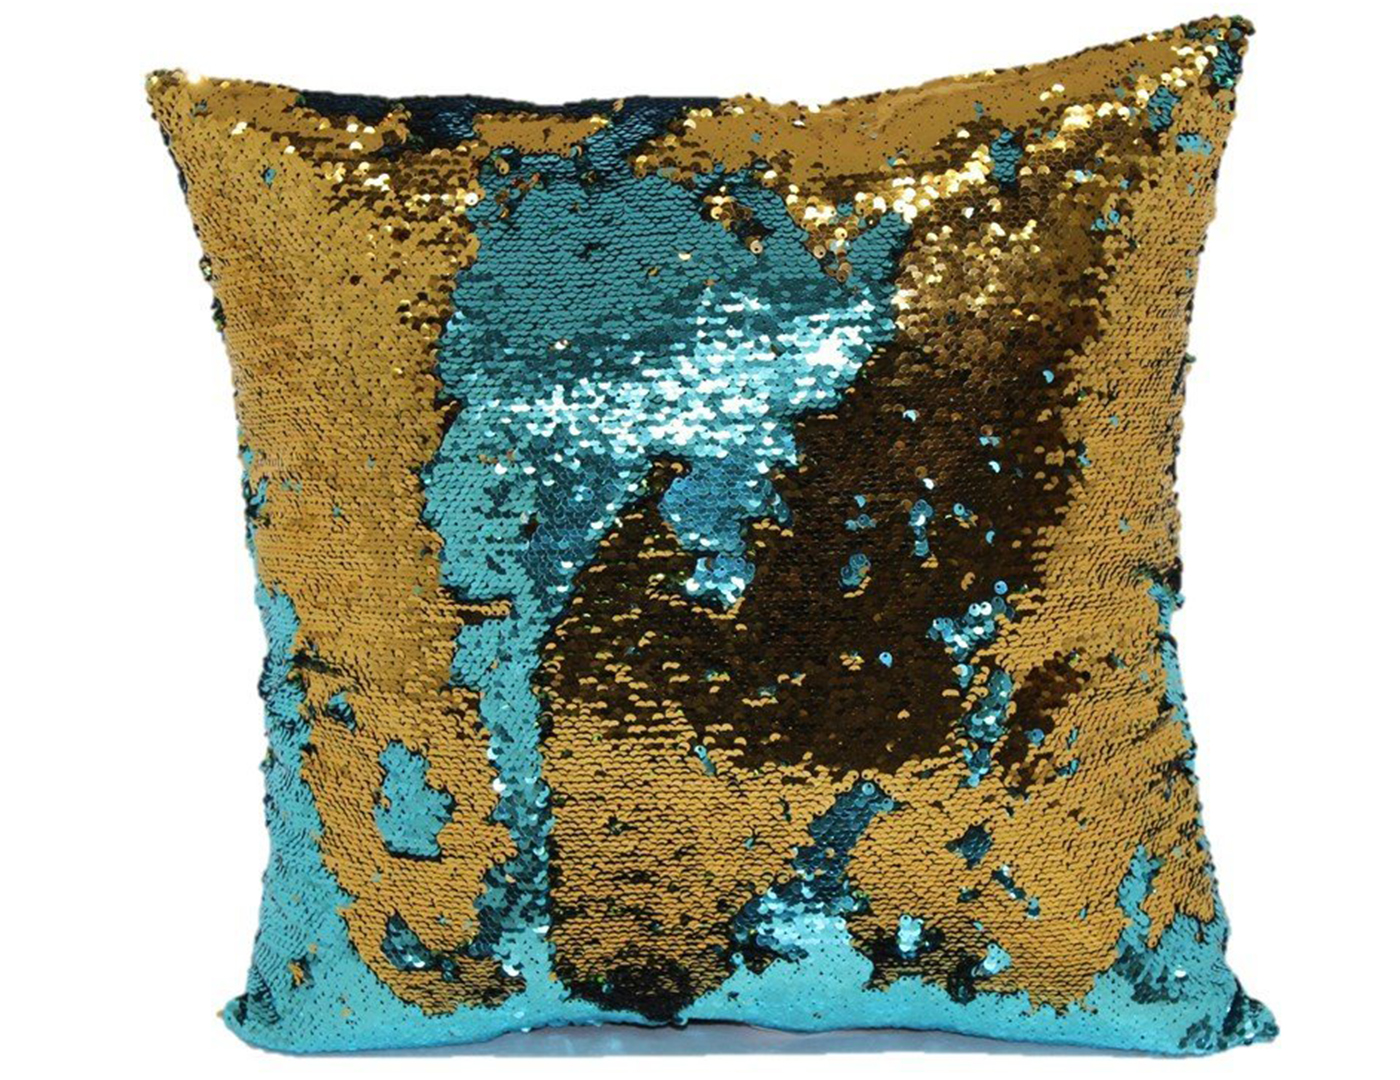 Teal and Bronze Mermaid Pillow